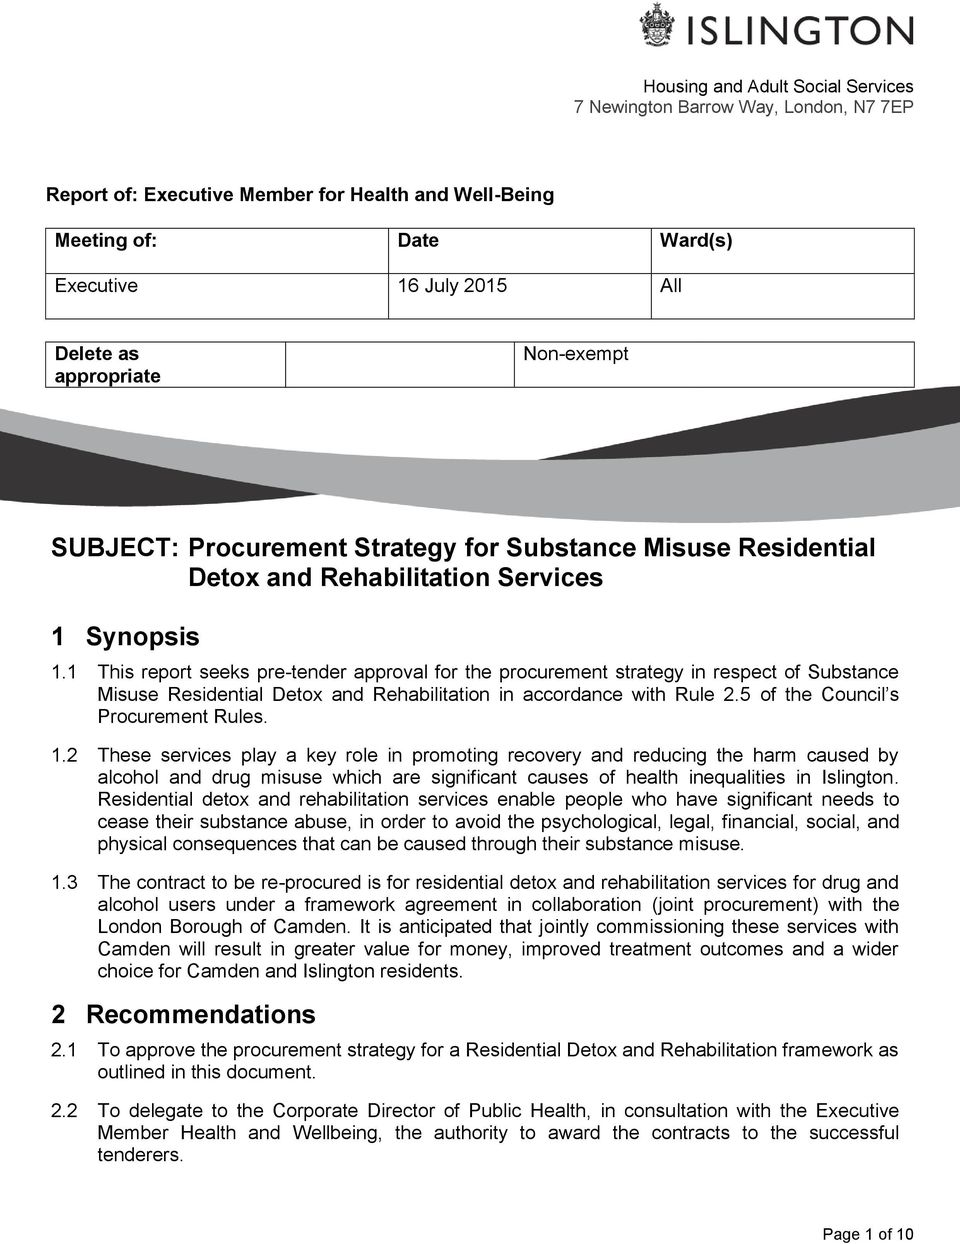 1 This report seeks pre-tender approval for the procurement strategy in respect of Substance Misuse Residential Detox and Rehabilitation in accordance with Rule 2.5 of the Council s Procurement Rules.